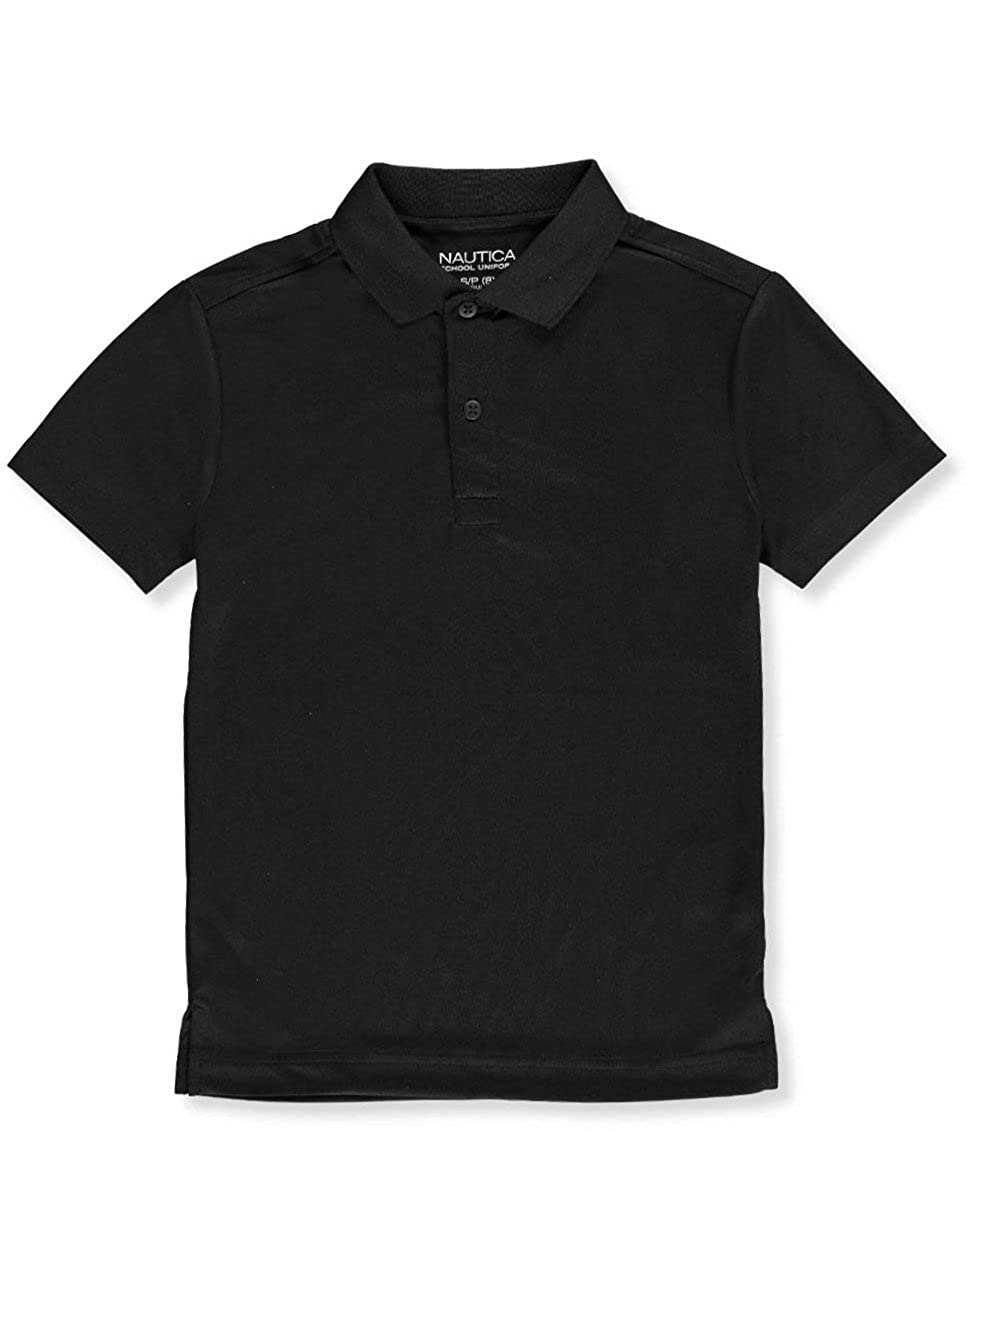 Nautica Big Boys' S/S Moisture Wicking Performance Polo